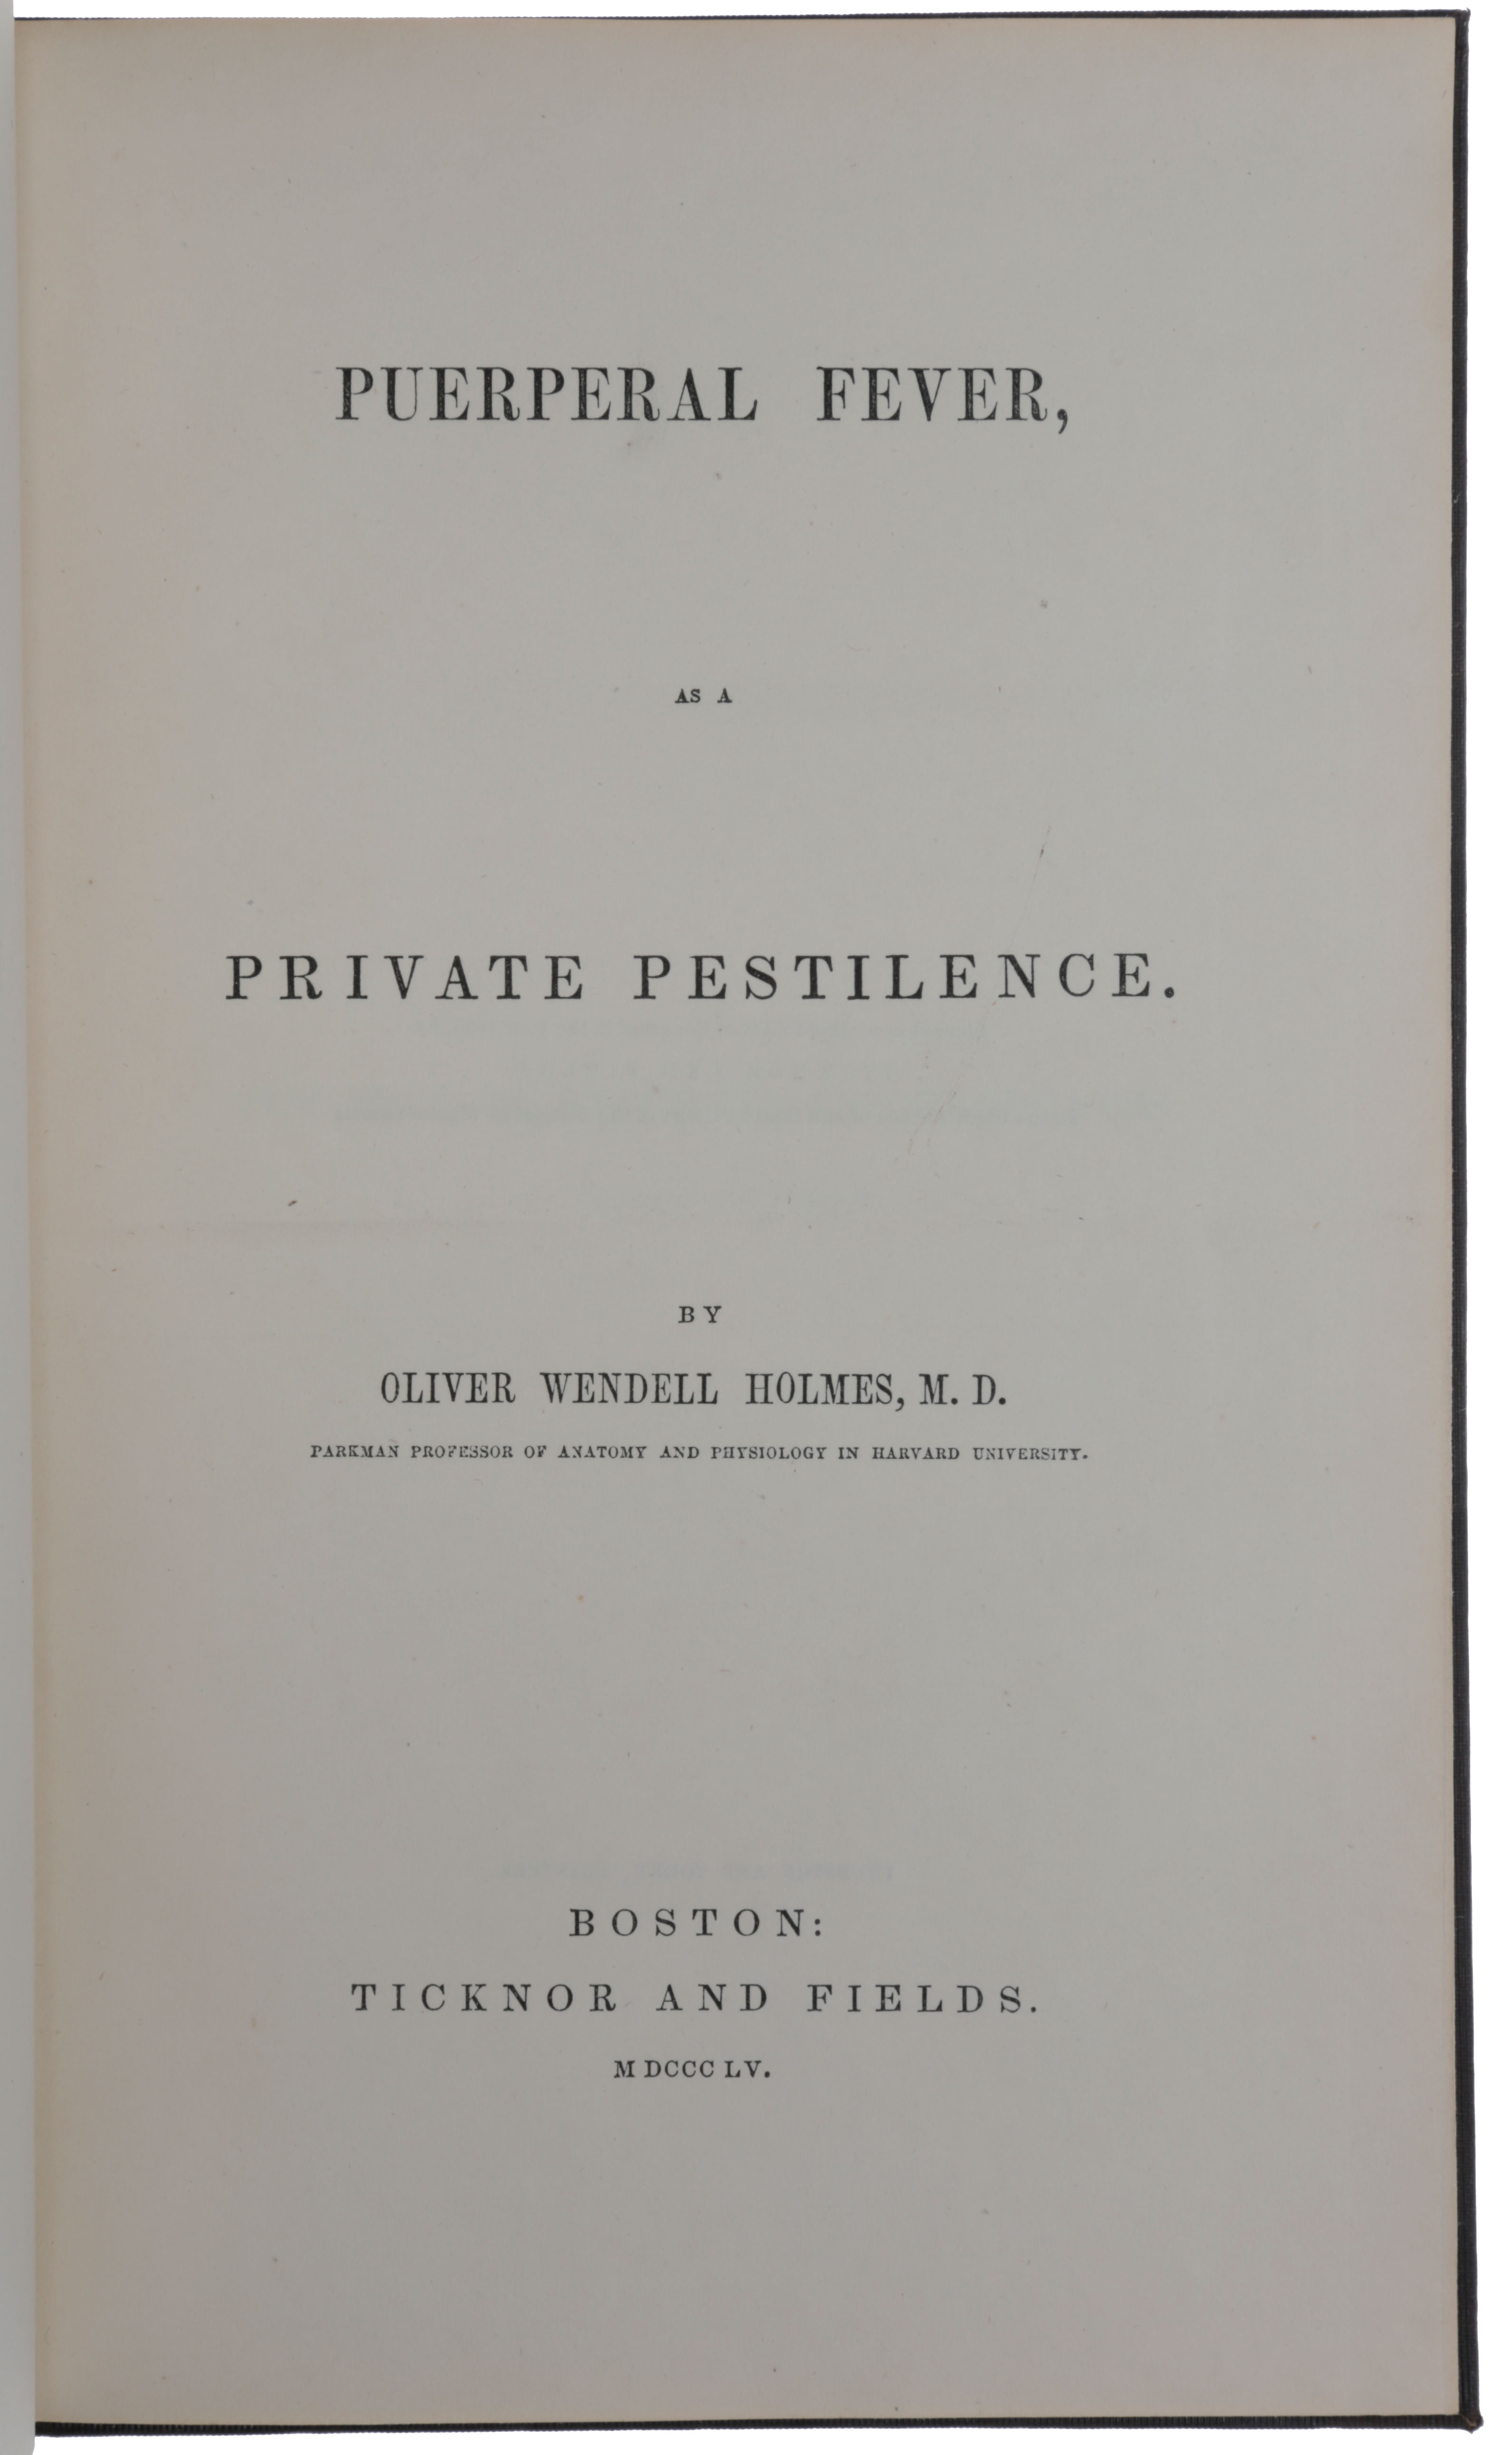 Puerperal Fever, as a Private Pestilence. Oliver Wendell HOLMES.